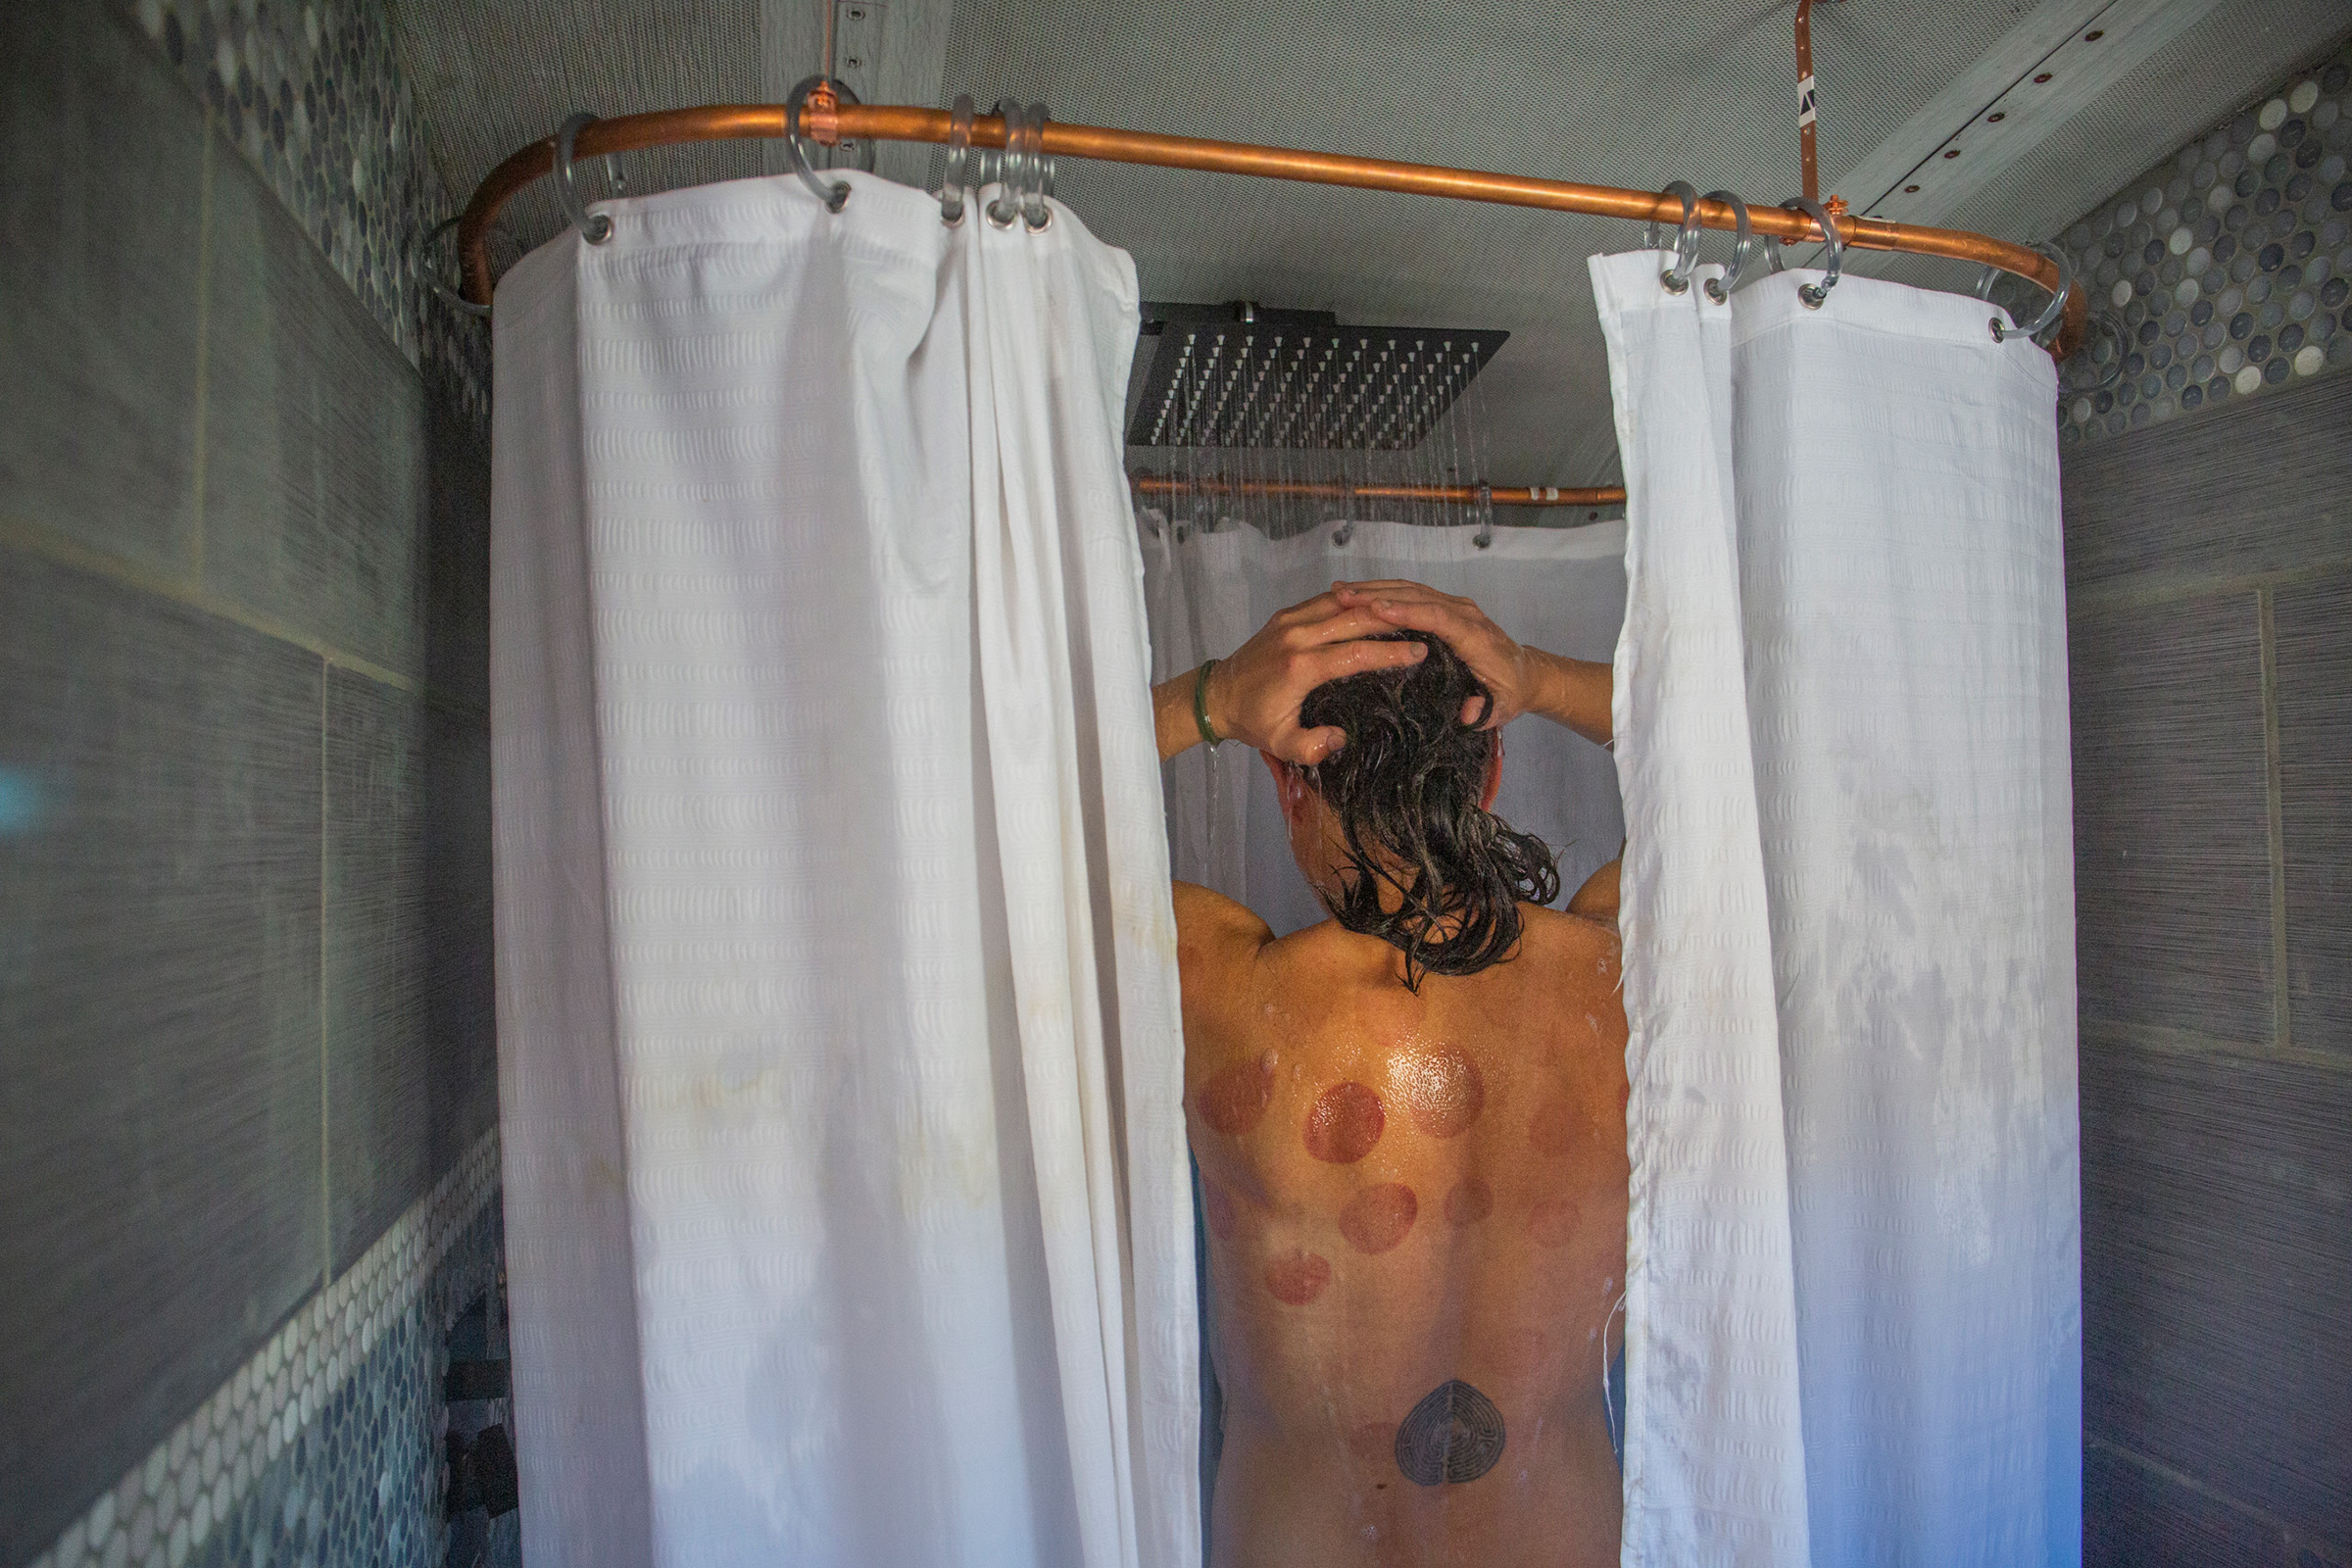 Paula showers in her handmade bathroom on the school bus, which includes a compost toilet and bathtub made from a metal trough. She suffered a major back injury years ago, and the bruising on her back is from 'cupping,' a form of alternative medicine often used to treat muscle pain, which she lets Max practice on her when she is stressed.